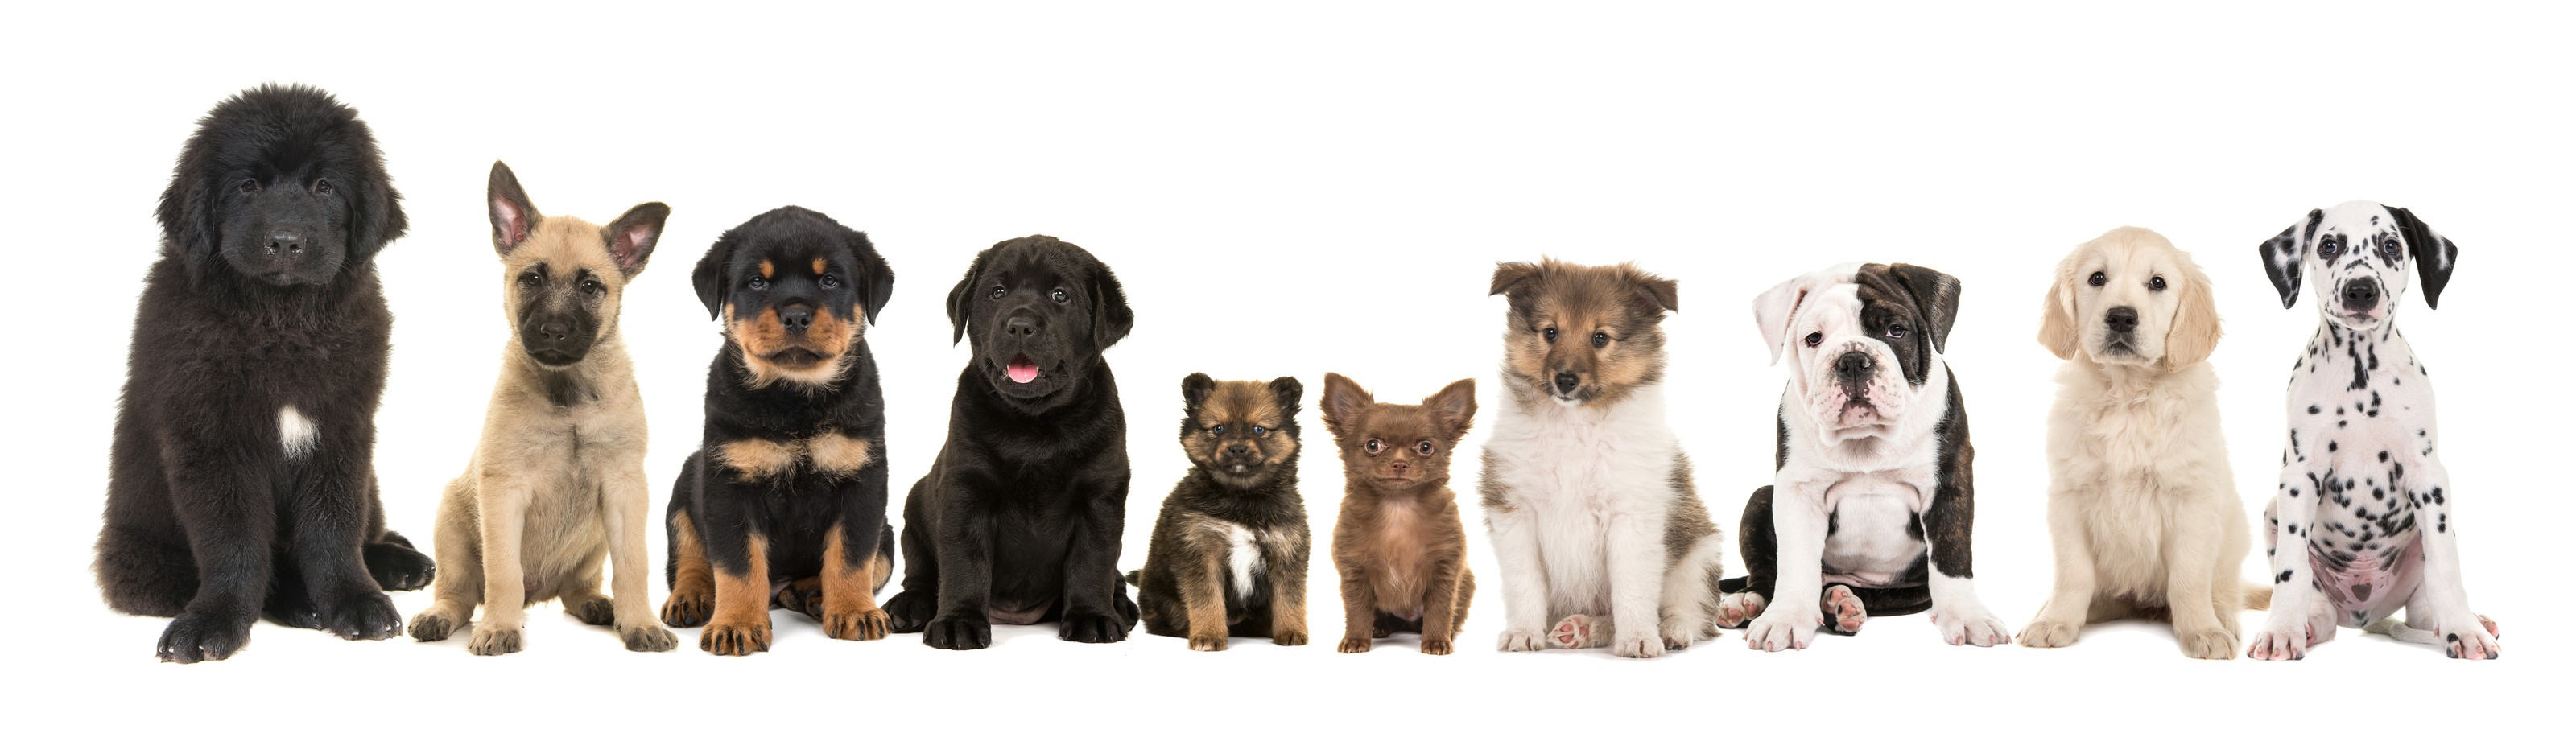 Lineup of different puppies